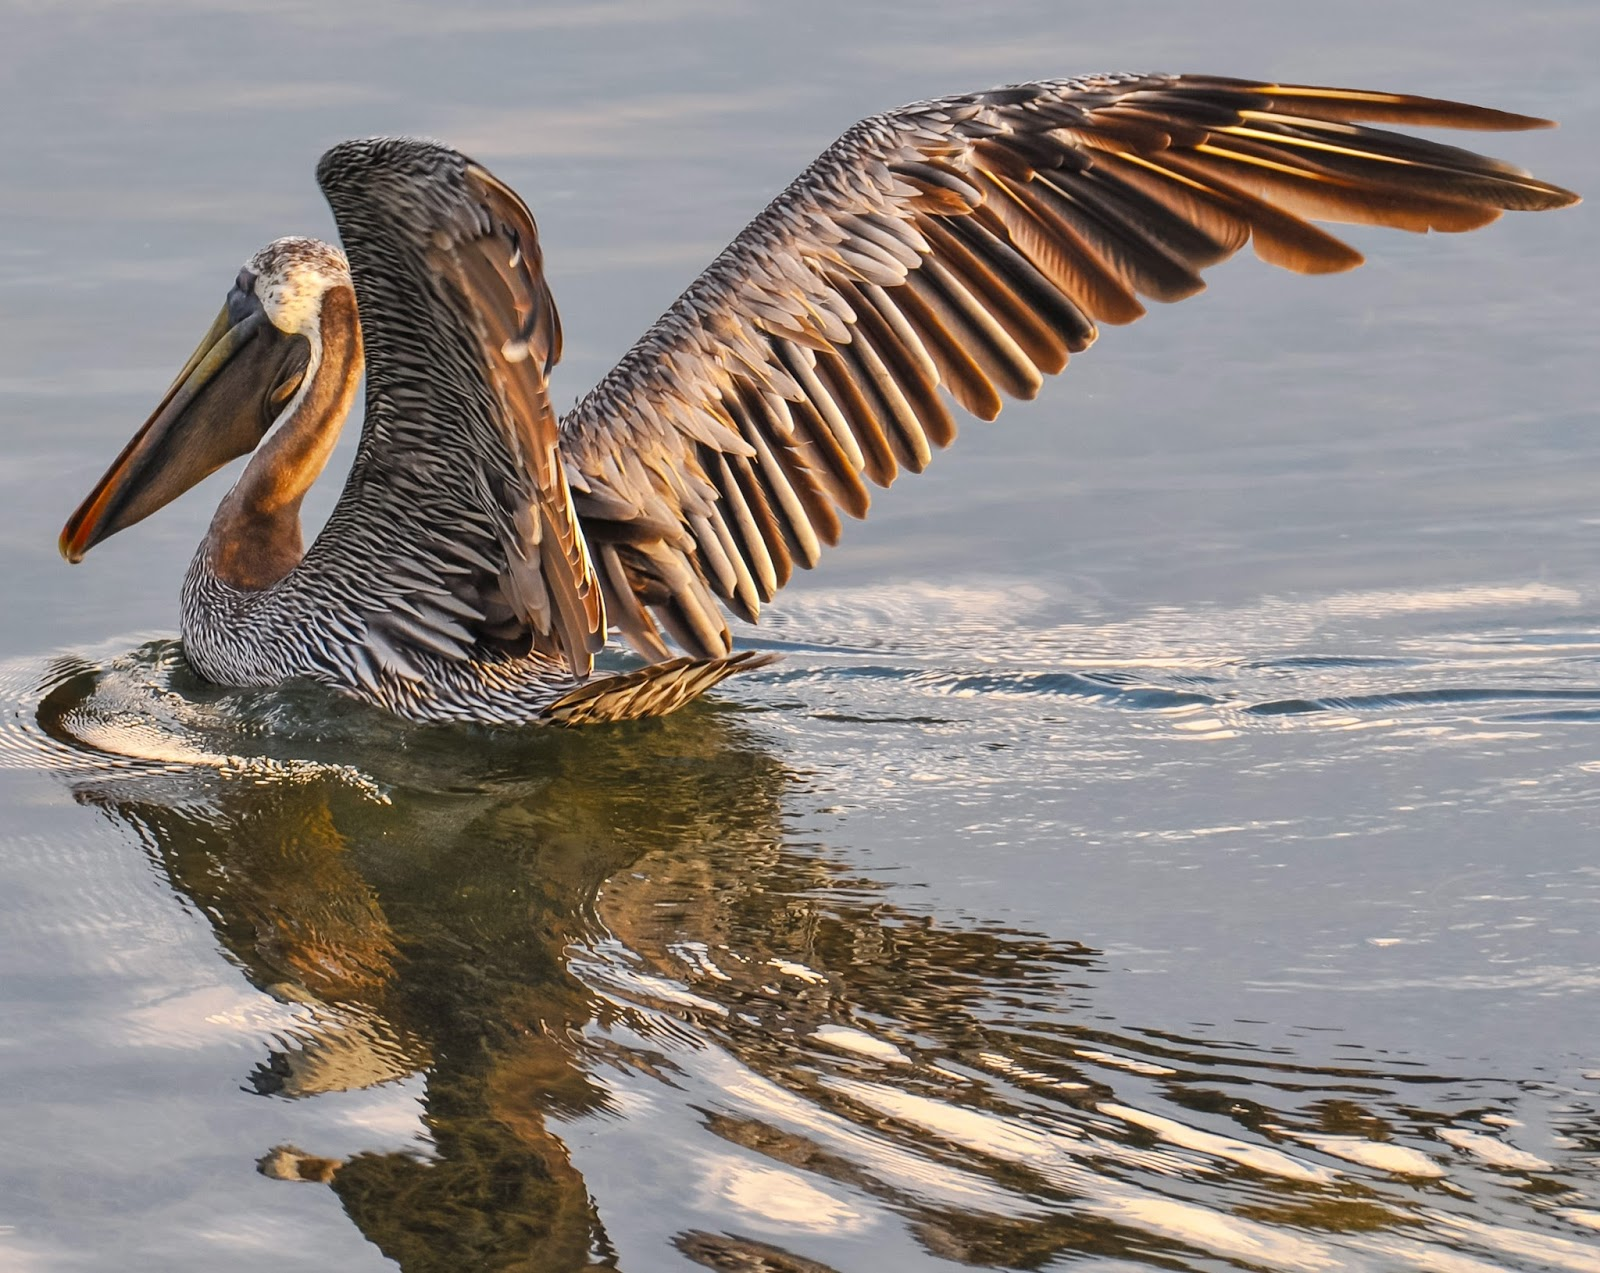 An amazing image of a pelican reflections.